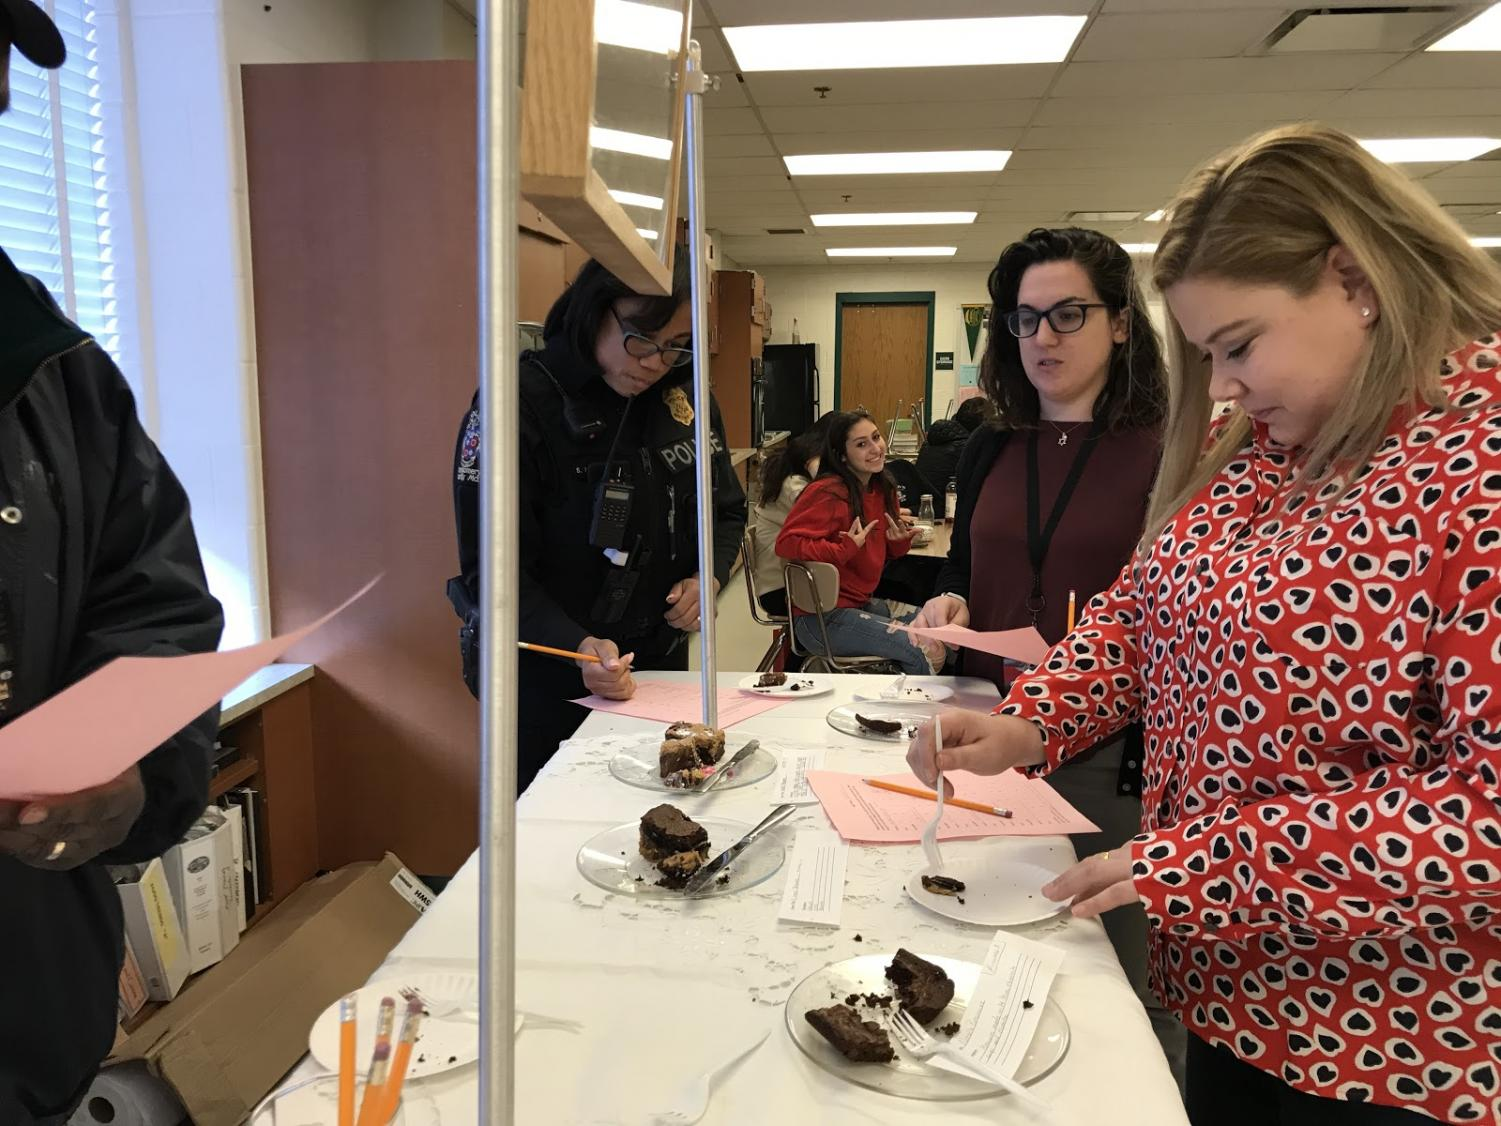 WJ+teachers+and+staff+members+who+do+not+teach+a+first+or+second+period+were+welcomed+by+the+Food+Trends+students+and+teacher+Connie+Pokress+to+taste+test+the+annual+chocolate+dessert+competition.+Students+created+a+variety+of+different+chocolate+based+dishes+such+as+cupcakes%2C+brownies+and+cakes.+%E2%80%9C%5BThe+desserts%5D+are+all+good%2C+some+are+better+than+others+but+they+all+did+a+great+job%2C%E2%80%9D+security+guard+Roy+Joyner+commented.+Photo+by+Sam+Falb